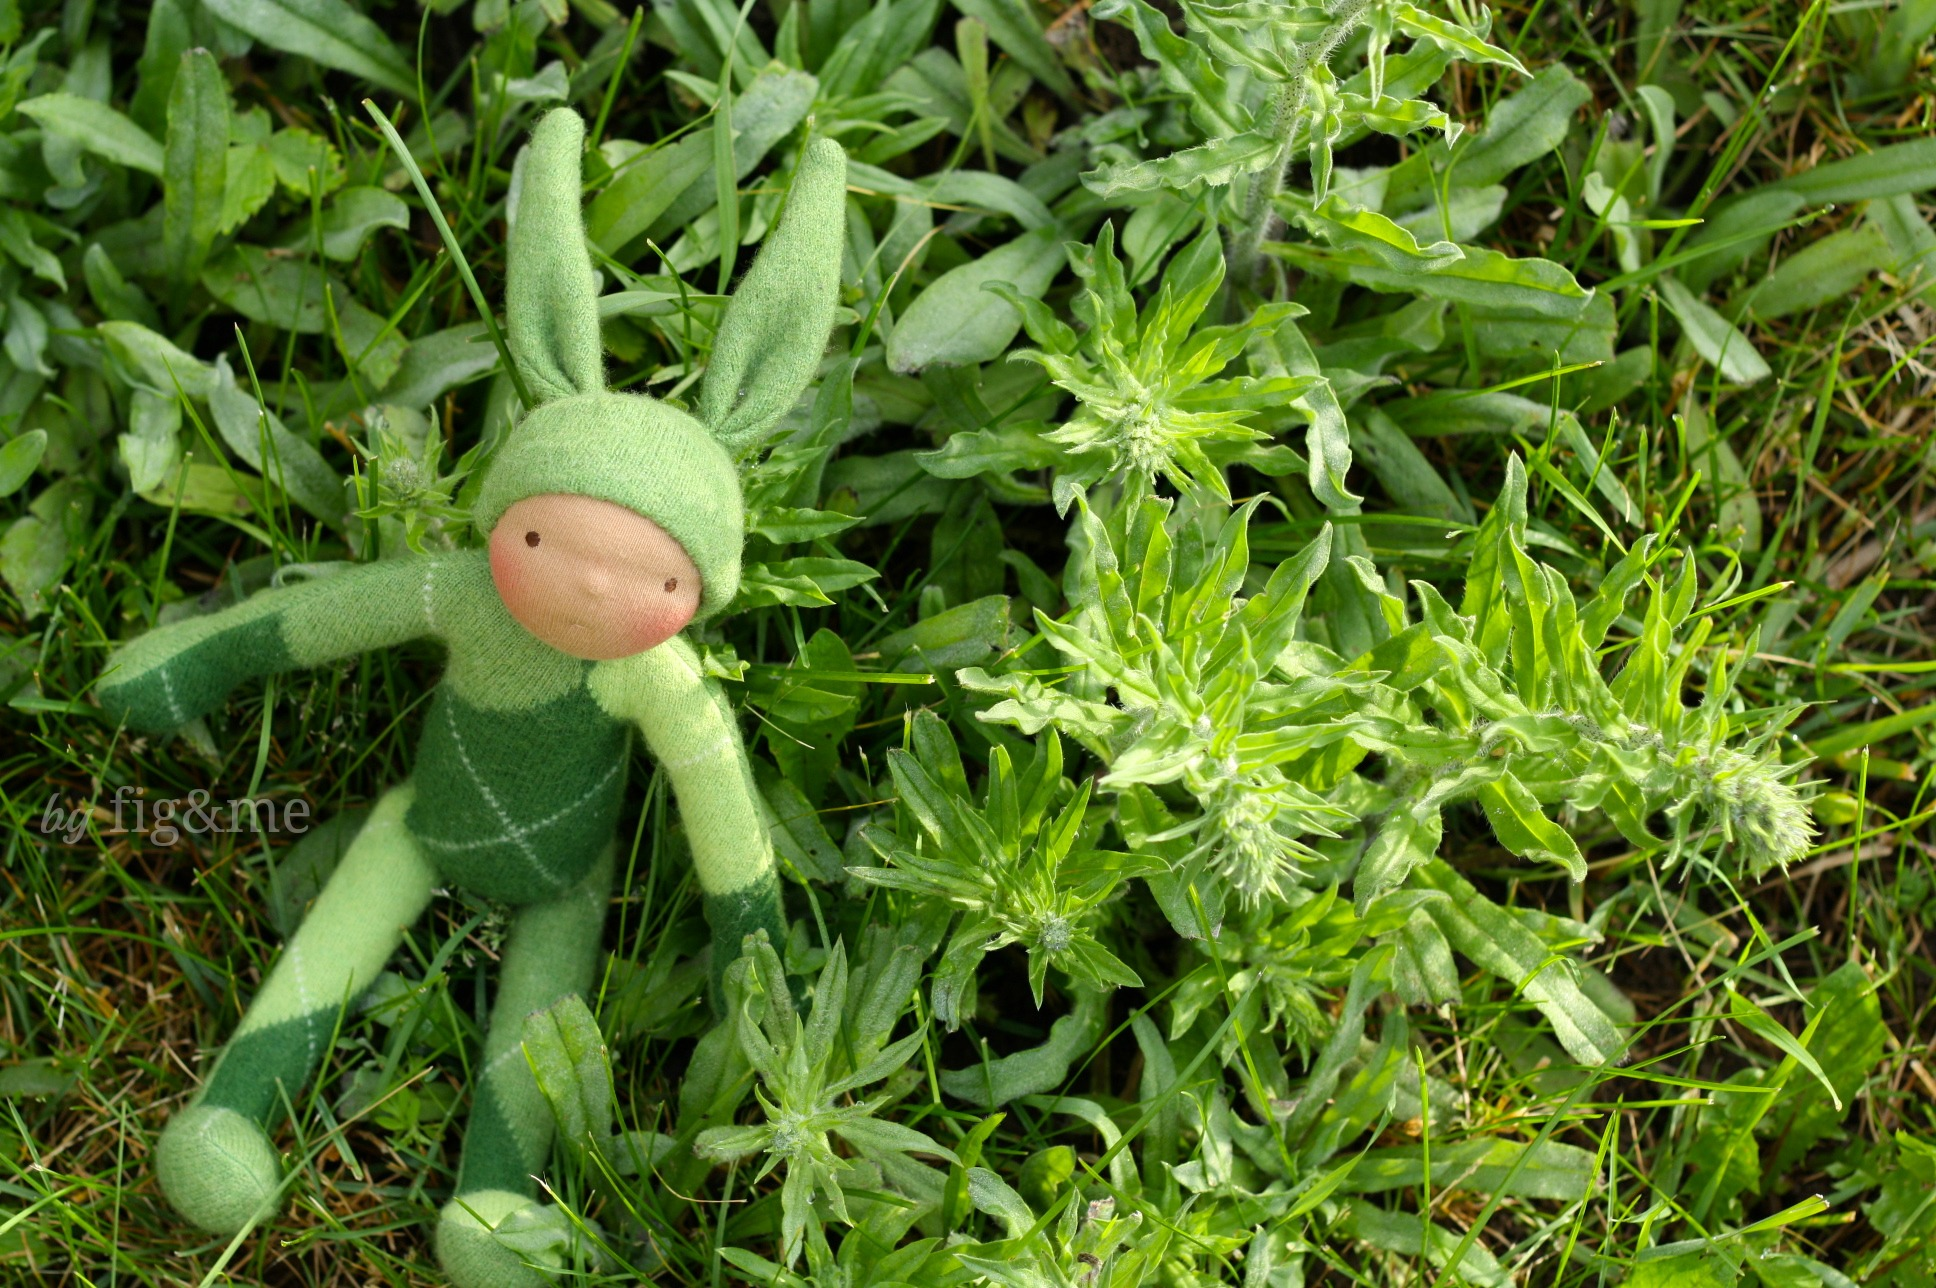 A handmade bunny doll in camouflage, by Fig and Me.